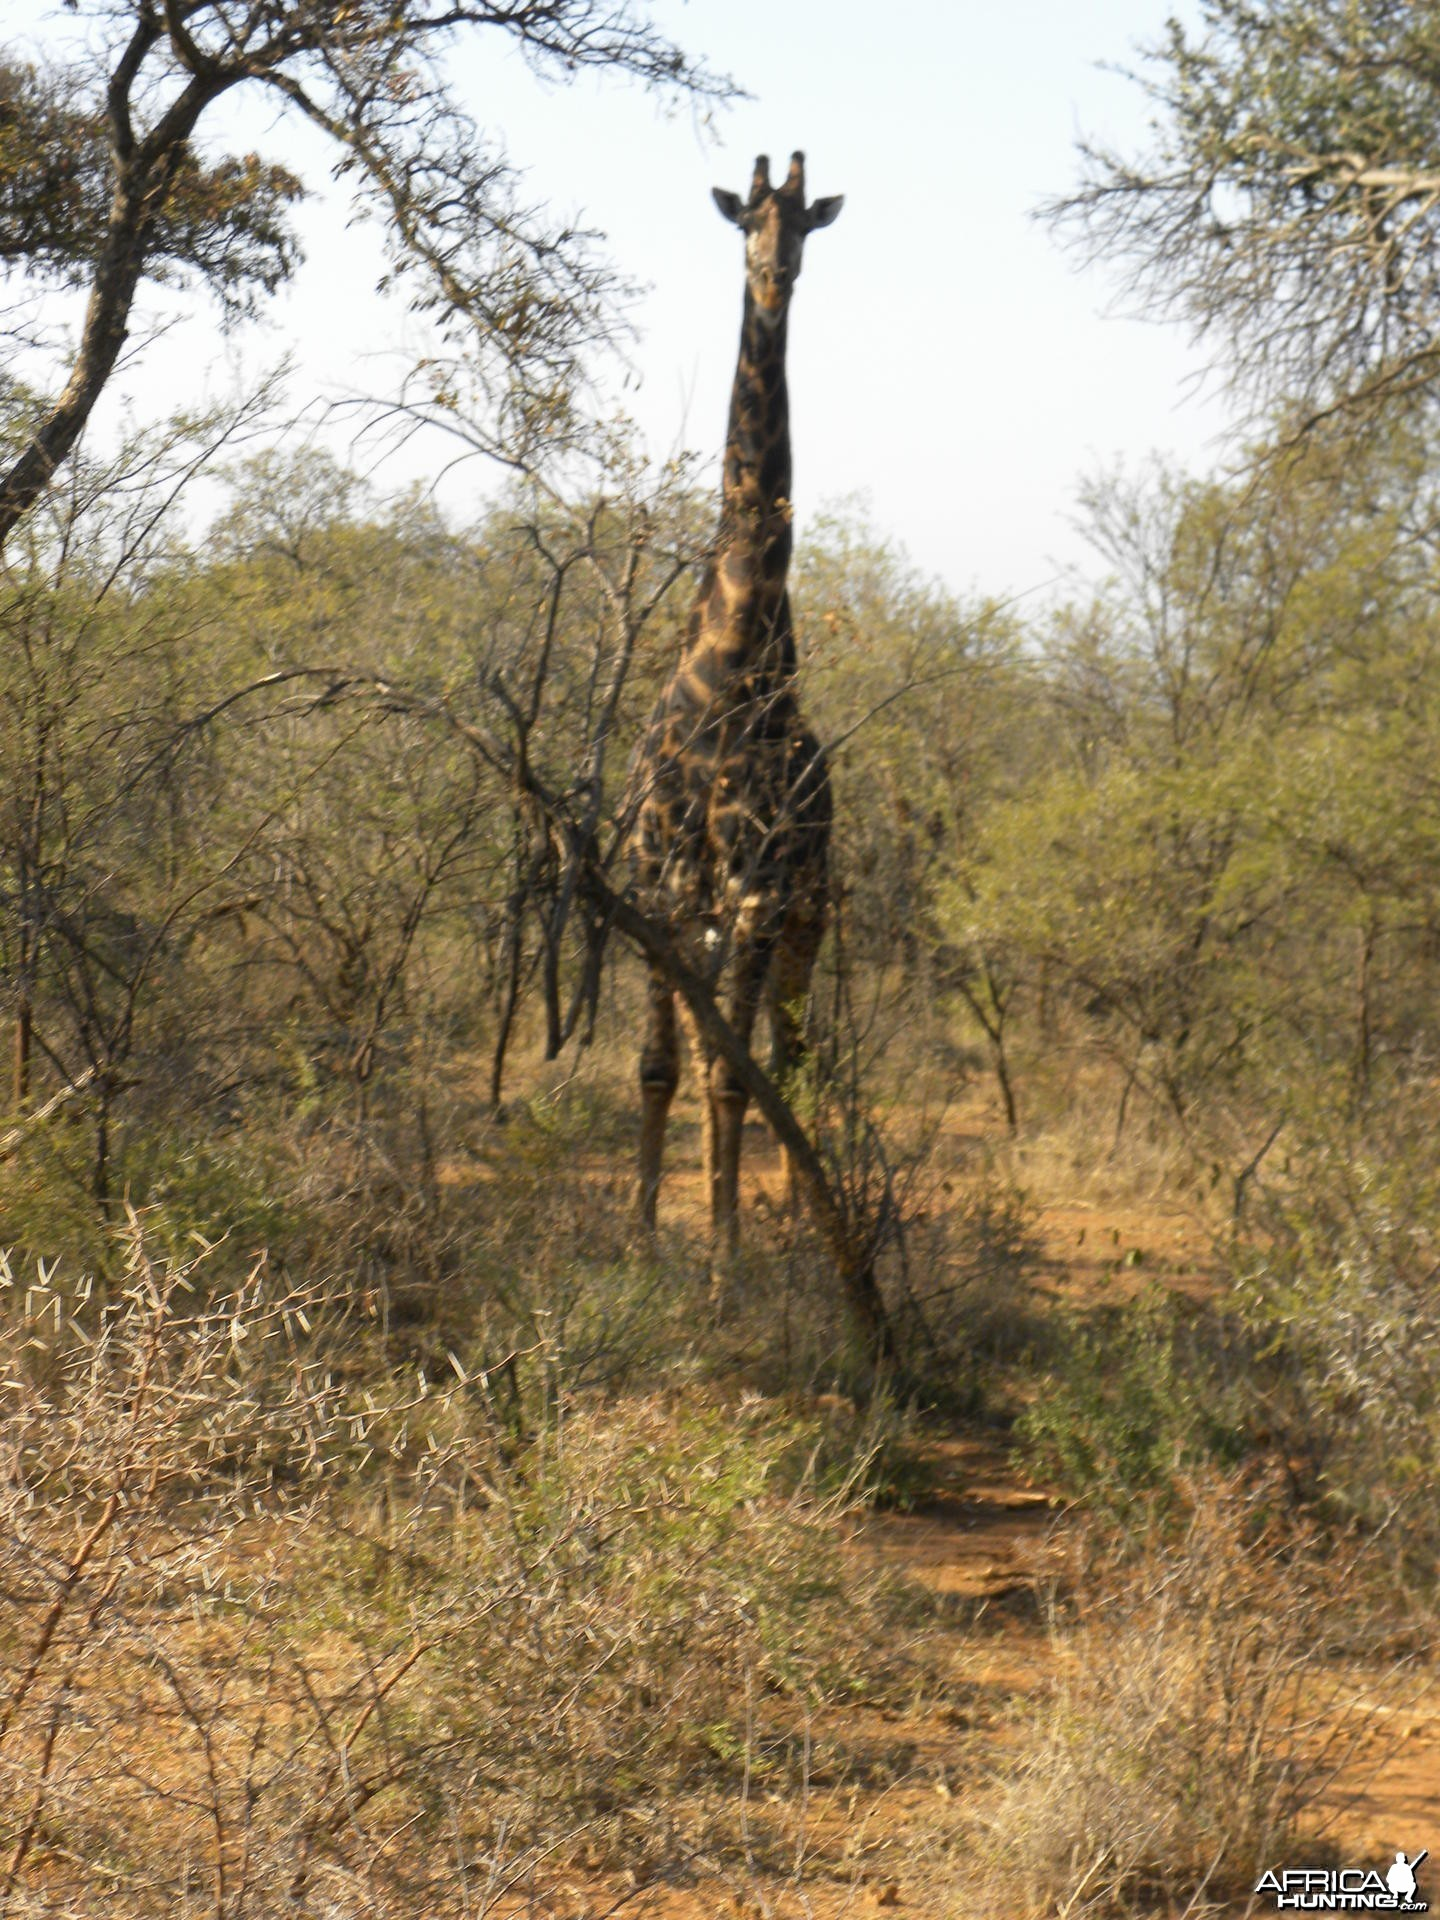 Giraffe Looking Down on Me While Stalking Gemsbuck